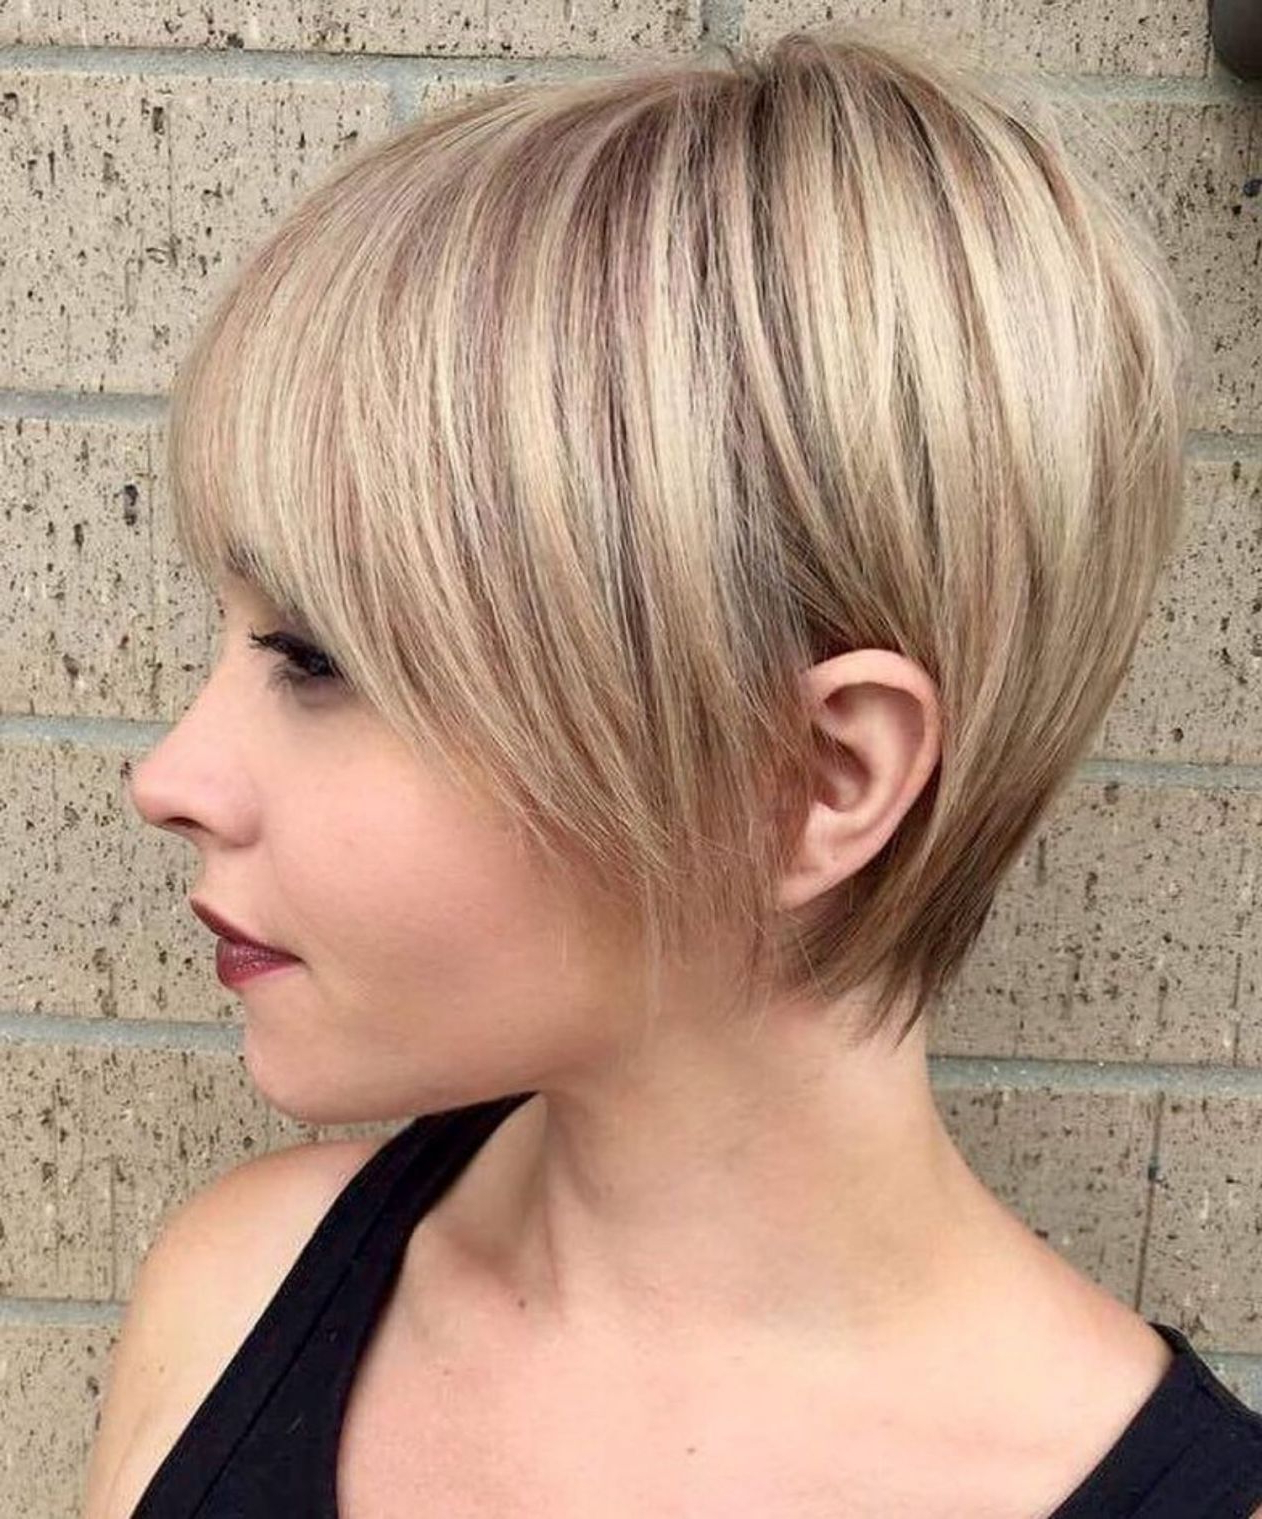 50 Super Cute Looks With Short Hairstyles For Round Faces In 2018 Regarding Pixie Bob Hairstyles With Golden Blonde Feathers (View 7 of 20)